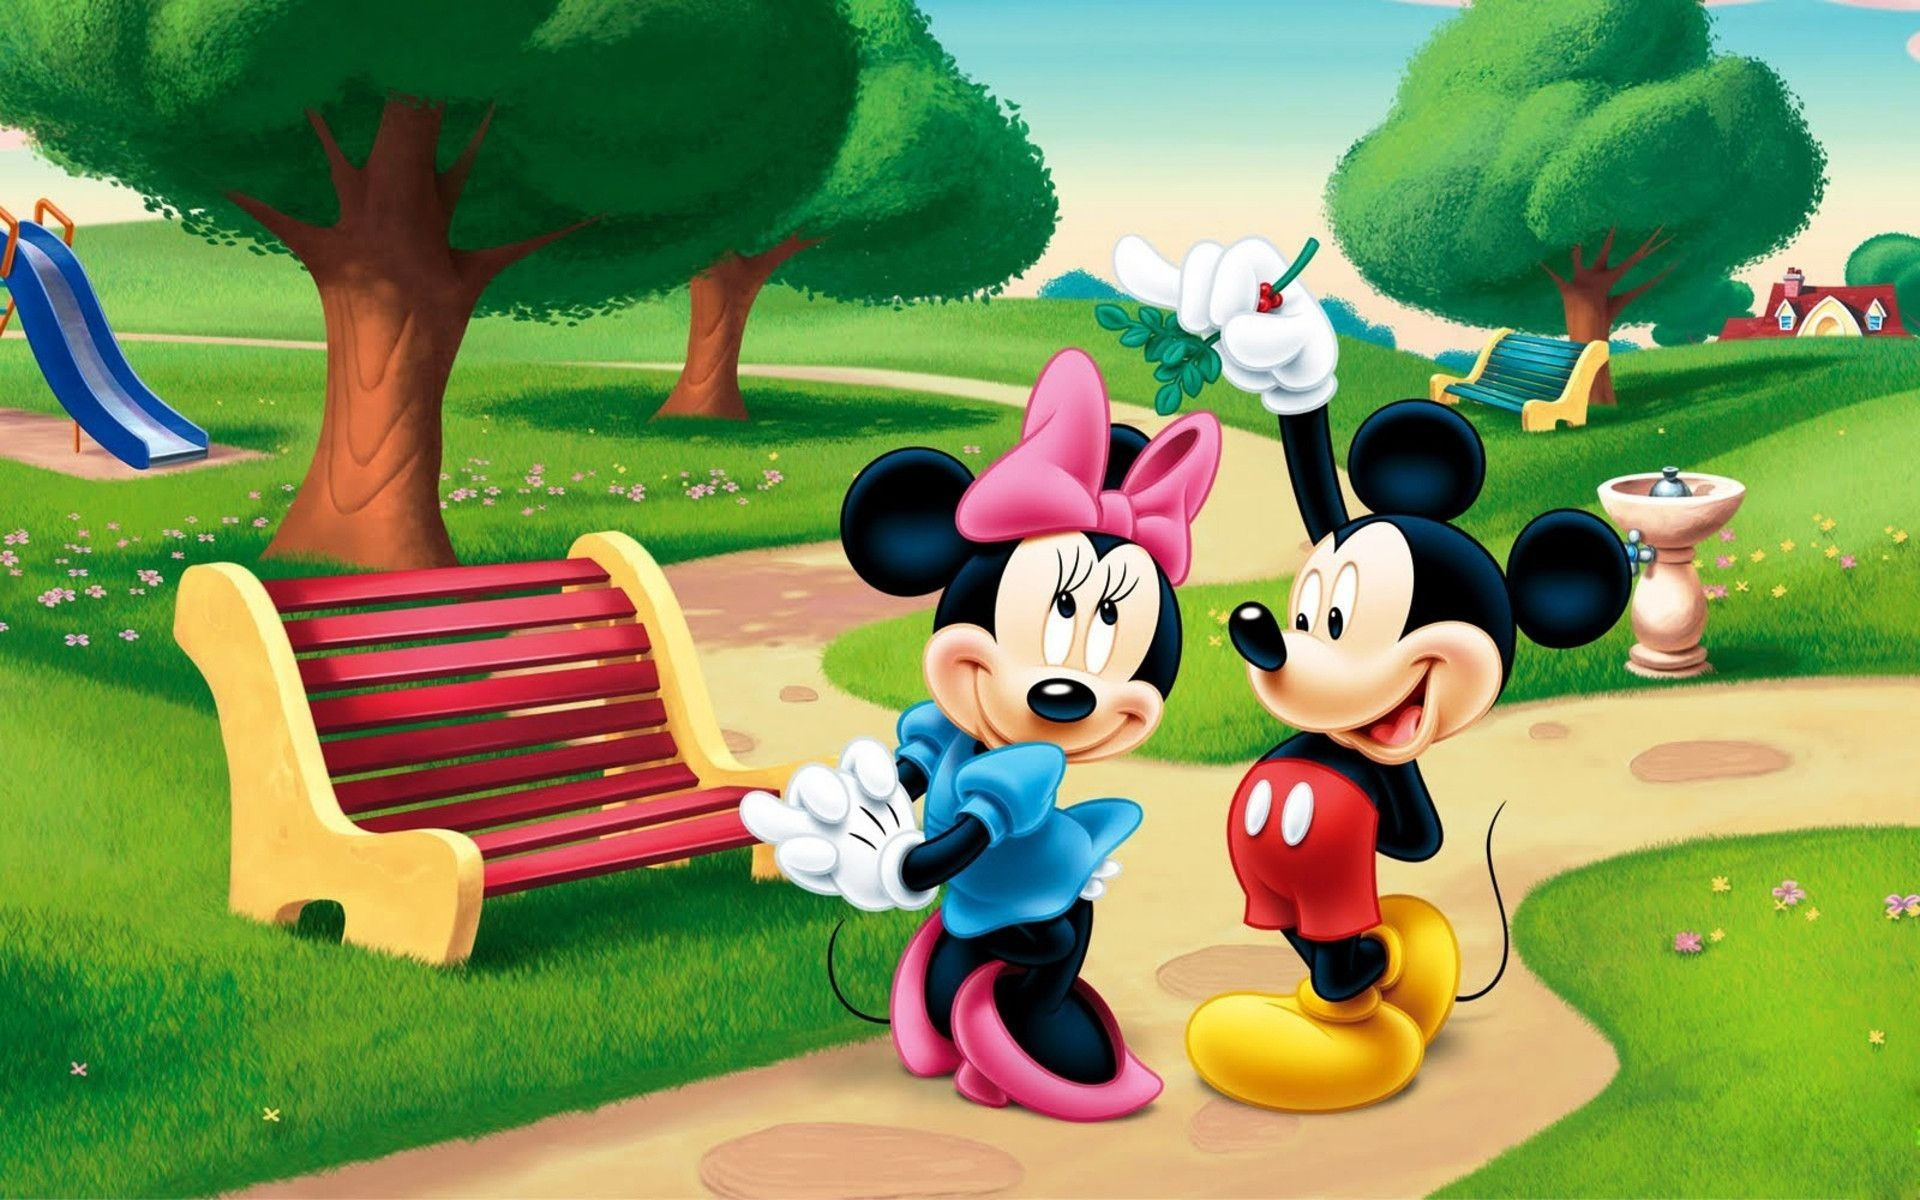 Mickey Mouse Wallpaper 183 ① Download Free Stunning